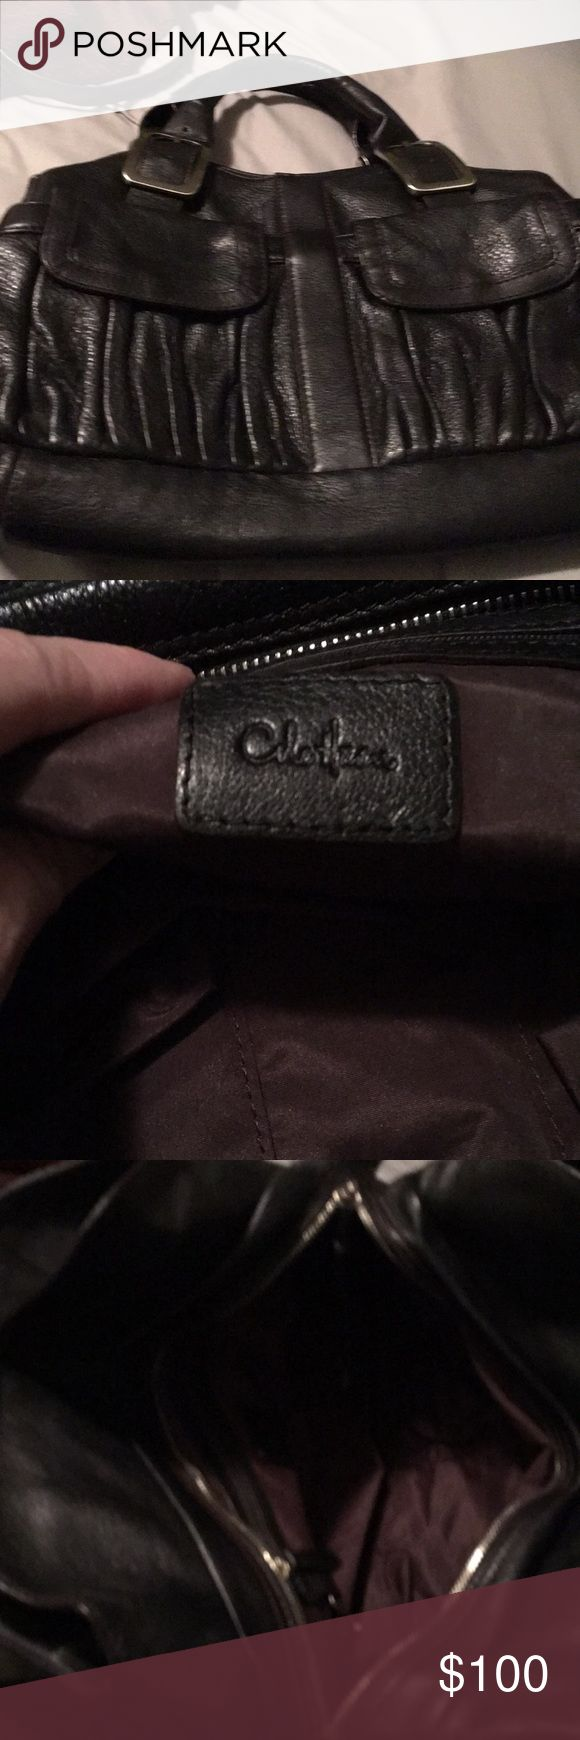 COLE HAAN a very nice leather bag This is a large Cole haan purse that has 3 compartments and 2 pockets on front and A zippered pocket and 2 regular pockets Inside. Nice leather purse is in excellent shape! cole haan Bags Satchels